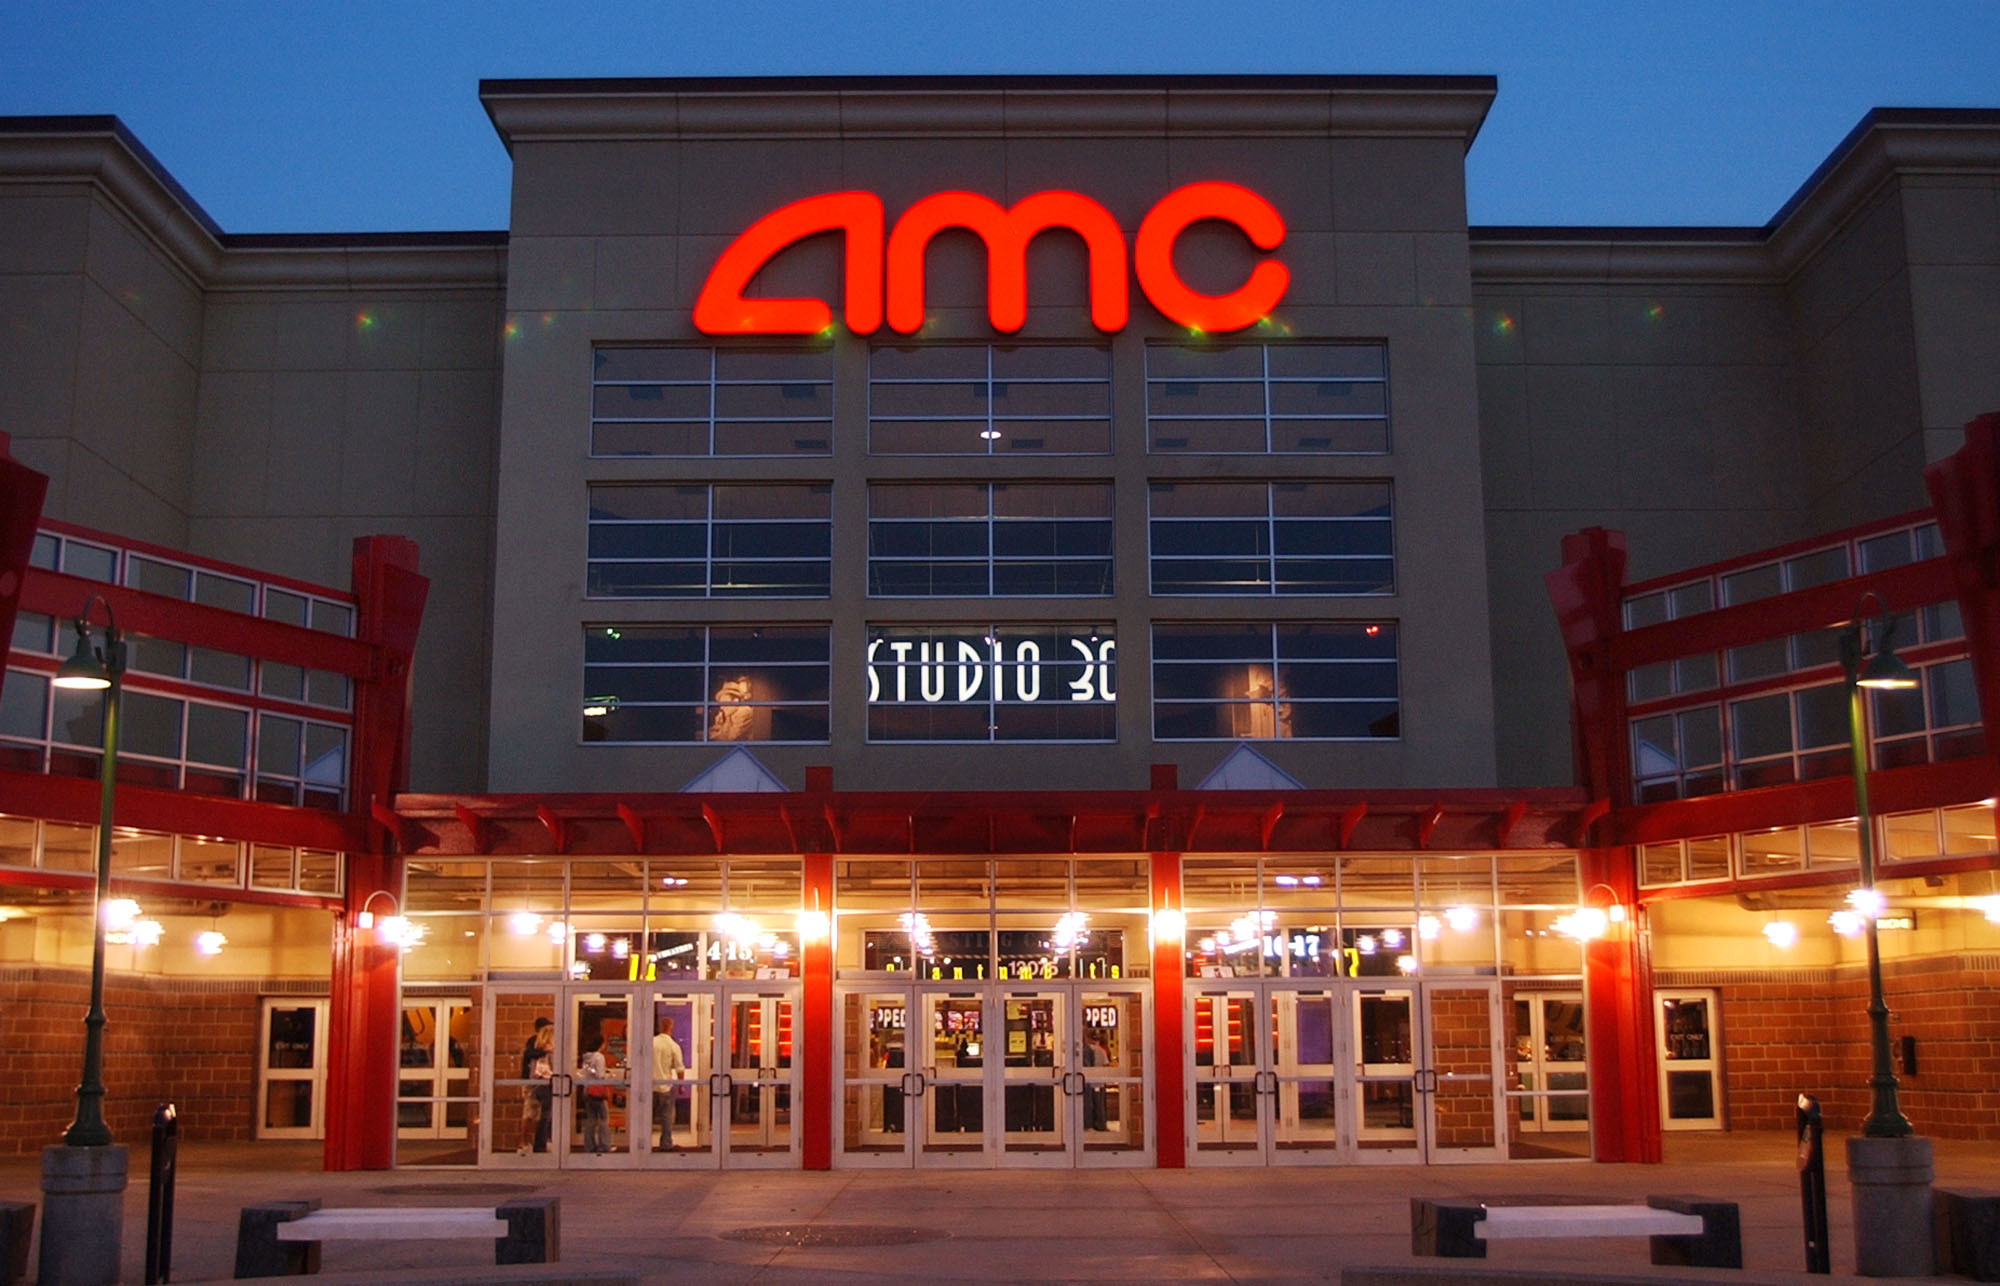 People enter AMC's Studio 30 theaterAMC Theatres Odeon and UCI, Olathe, Kansas, USA - 11 May 2005AMC Theatres is buying European movie theater operator Odeon & UCI Cinemas Group in a deal valued at about 921 million pounds ($1.21 billion). AMC says, Tuesday, July 12, 2016, that the transaction will make it the biggest movie theater operator in the world. Odeon & UCI has 242 theaters in Europe. The deal will give AMC a total of 627 theaters in eight countries.